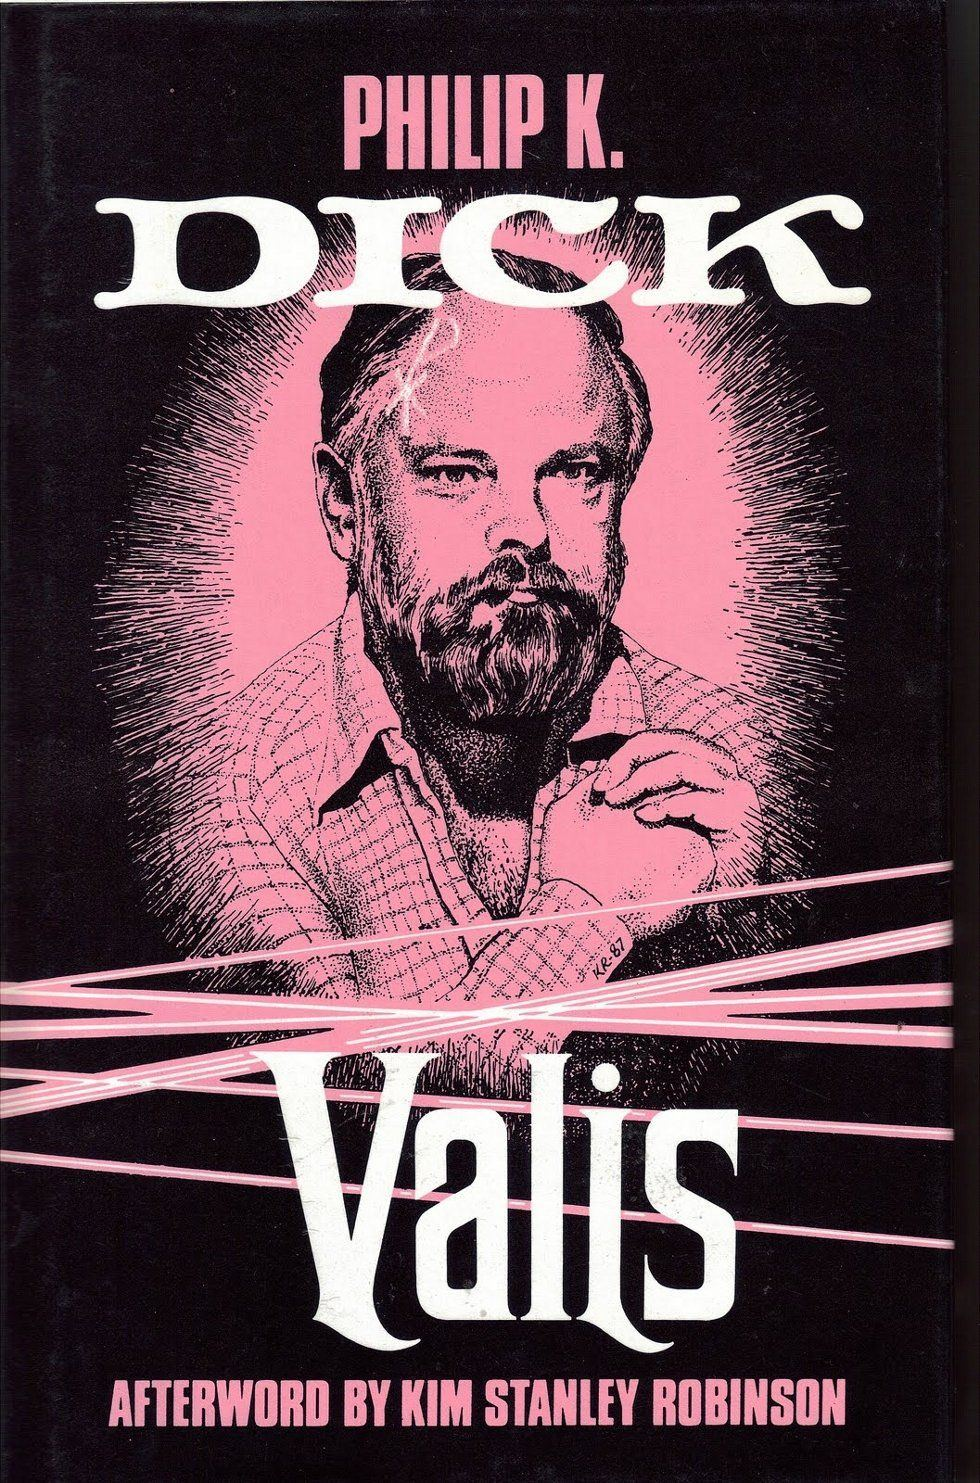 Saber reccomend Philip k dick blog